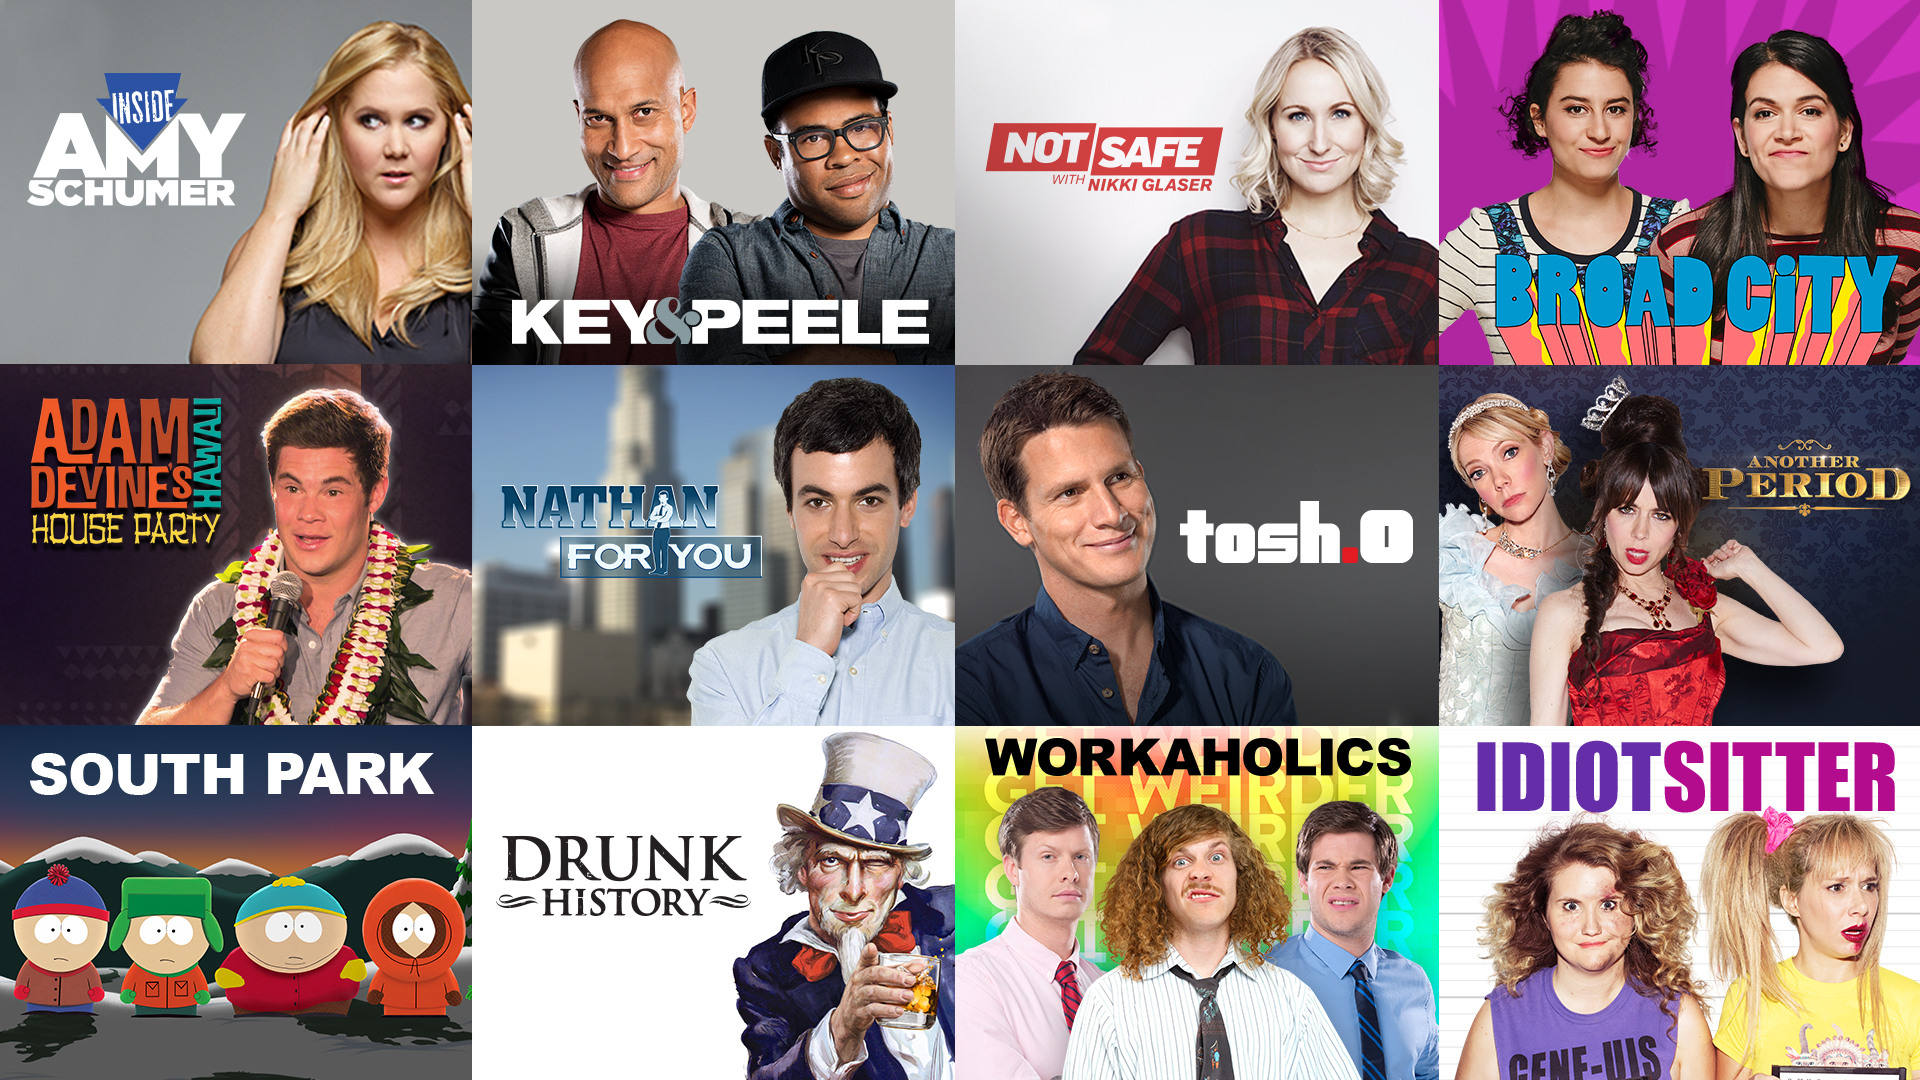 WATCH ALL YOUR FAVORITE SHOWS, RIGHT ON YOUR PHONE - DOWNLOAD THE APP